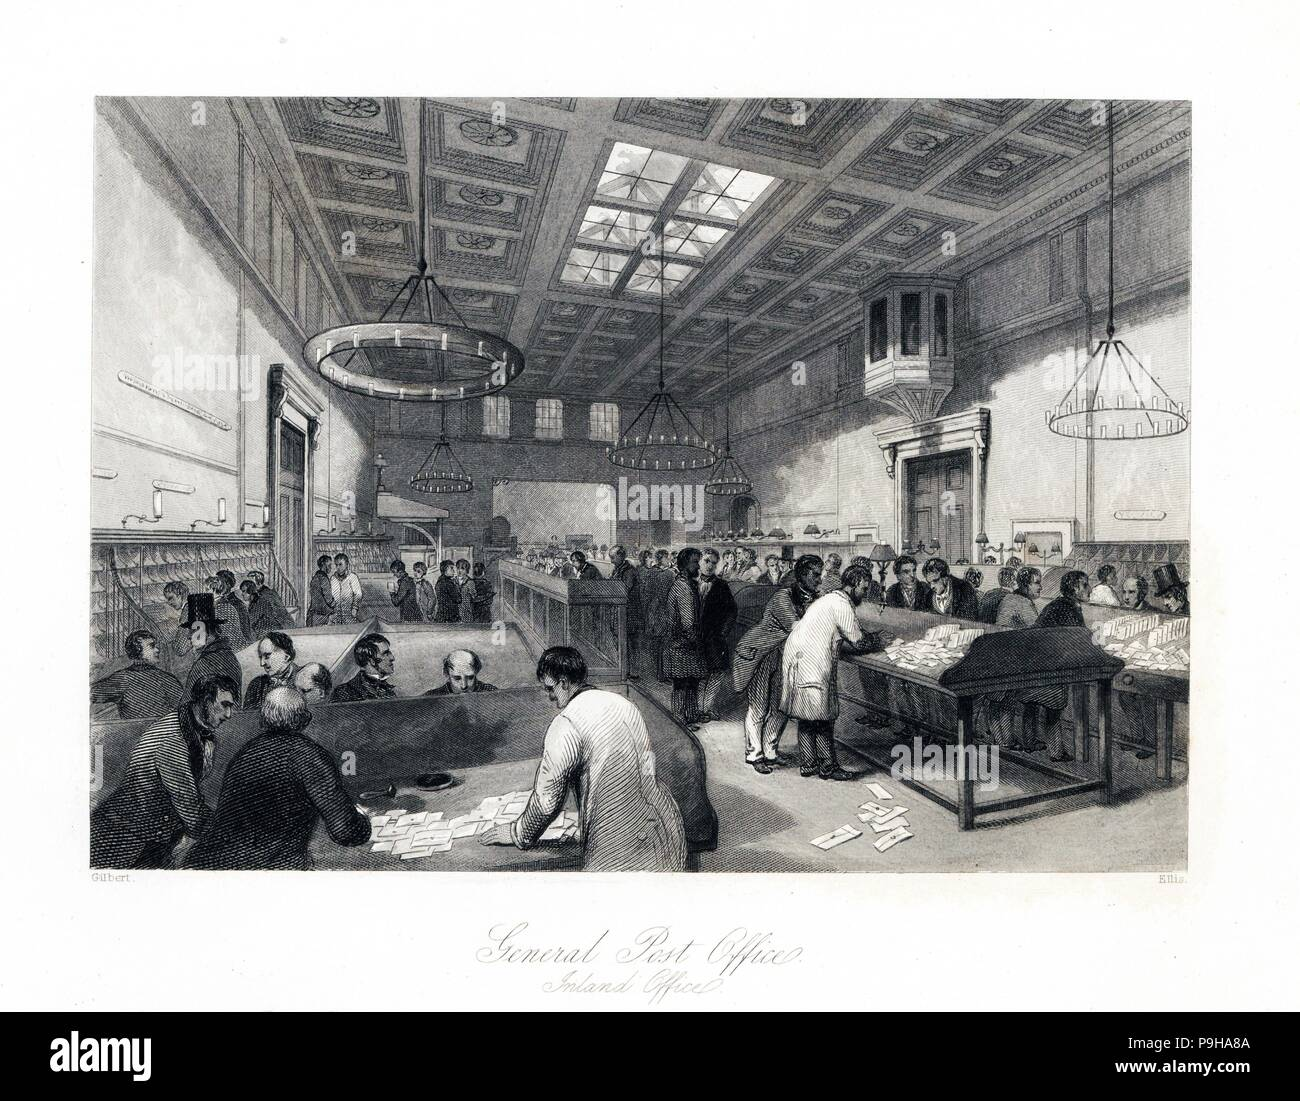 The Inland Office within the General Post Office. Royal Mail clerks sorting some of the 200 million letters sent annually in England in the 1840s. Steel engraving by Ellis after an illustration by Gilbert from London Interiors, Their Costumes and Ceremonies, Joshua Mead, London, 1841. - Stock Image